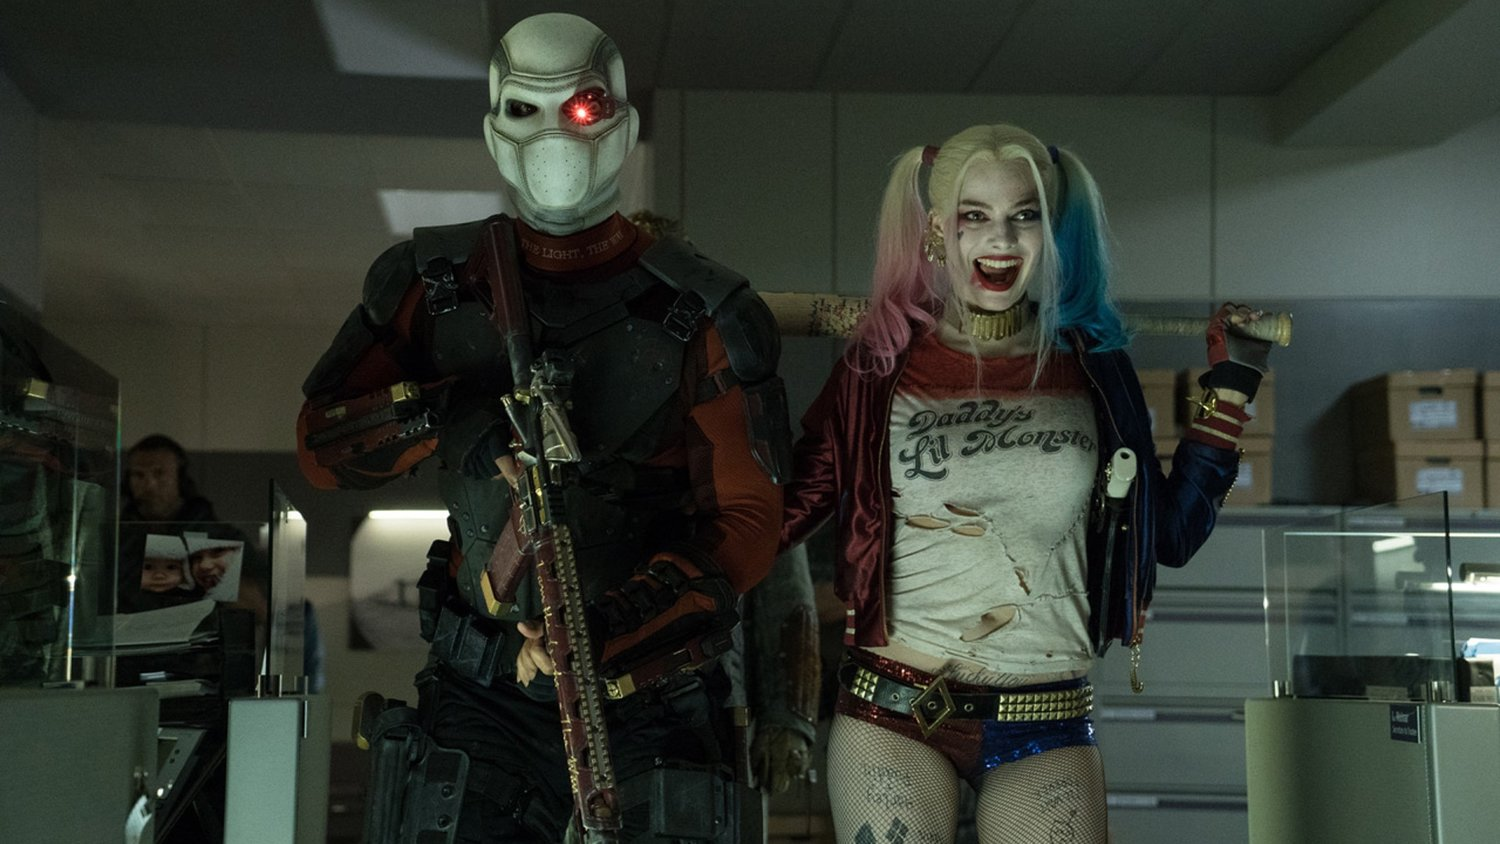 THE SHALLOWS Director Jaume Collet-Serra Could Direct SUICIDE SQUAD 2 If Mel Gibson Passes